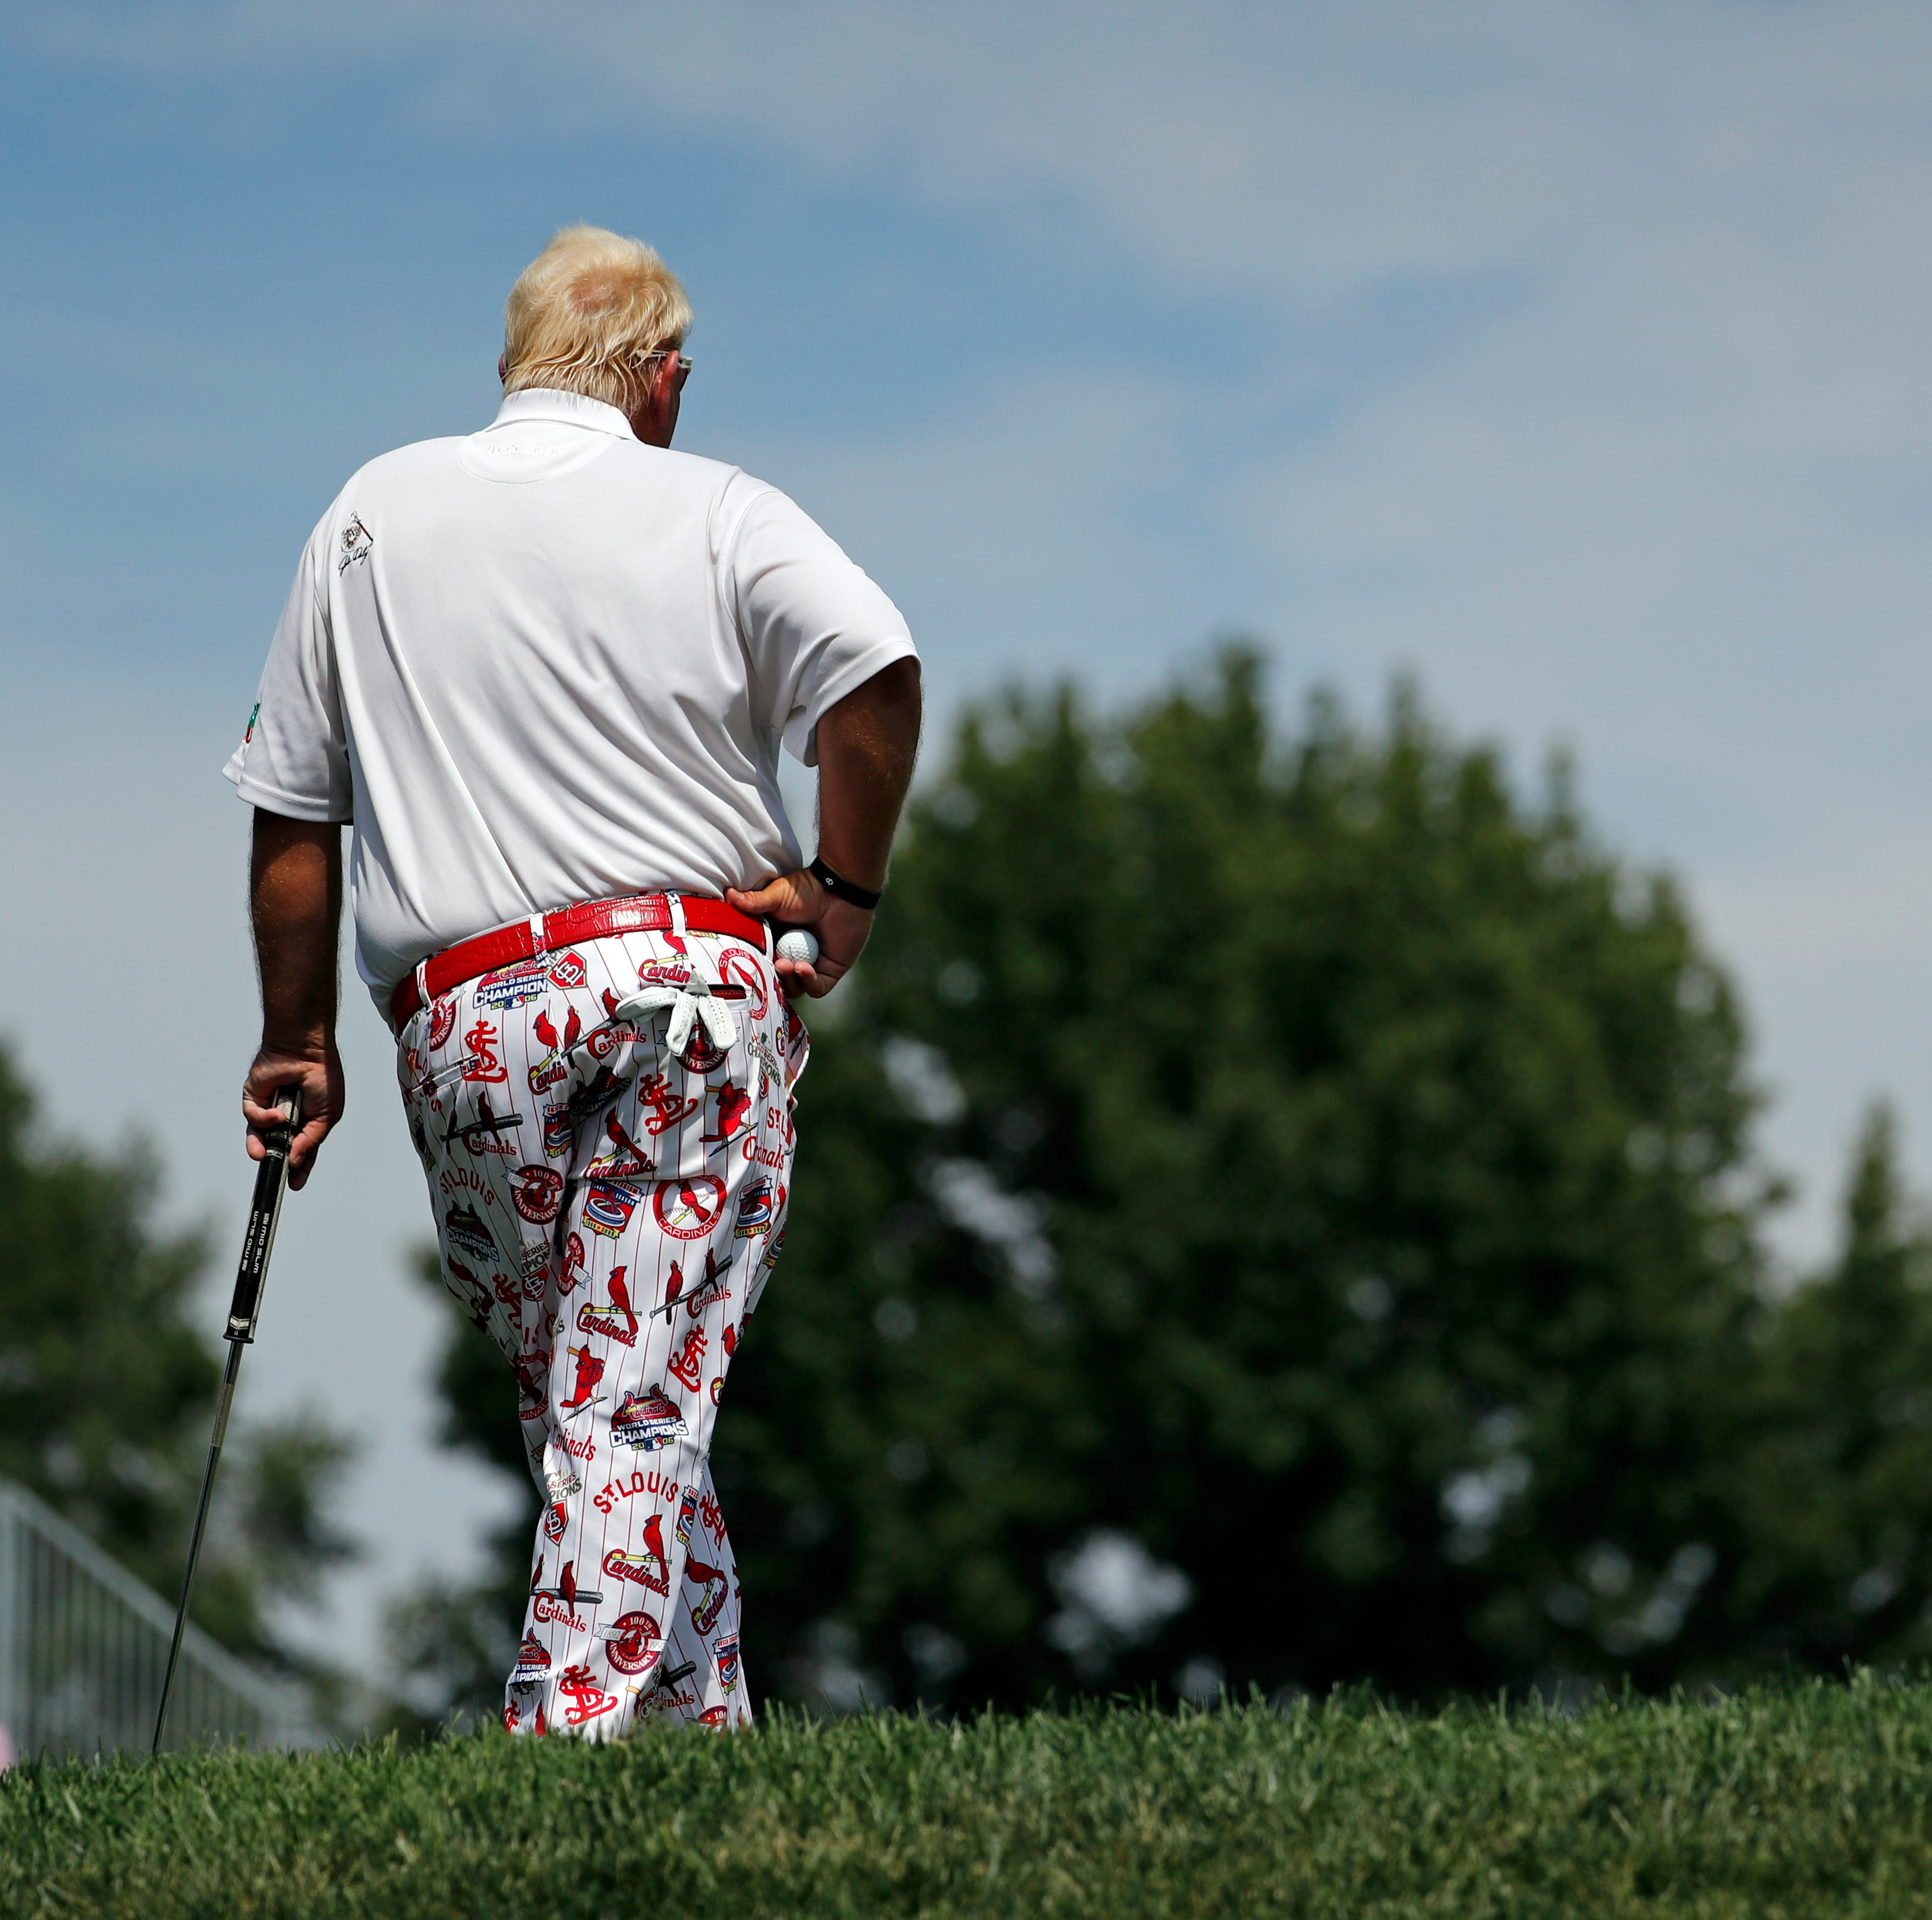 Sanford International: National treasure John Daly takes pit stop at No. 12